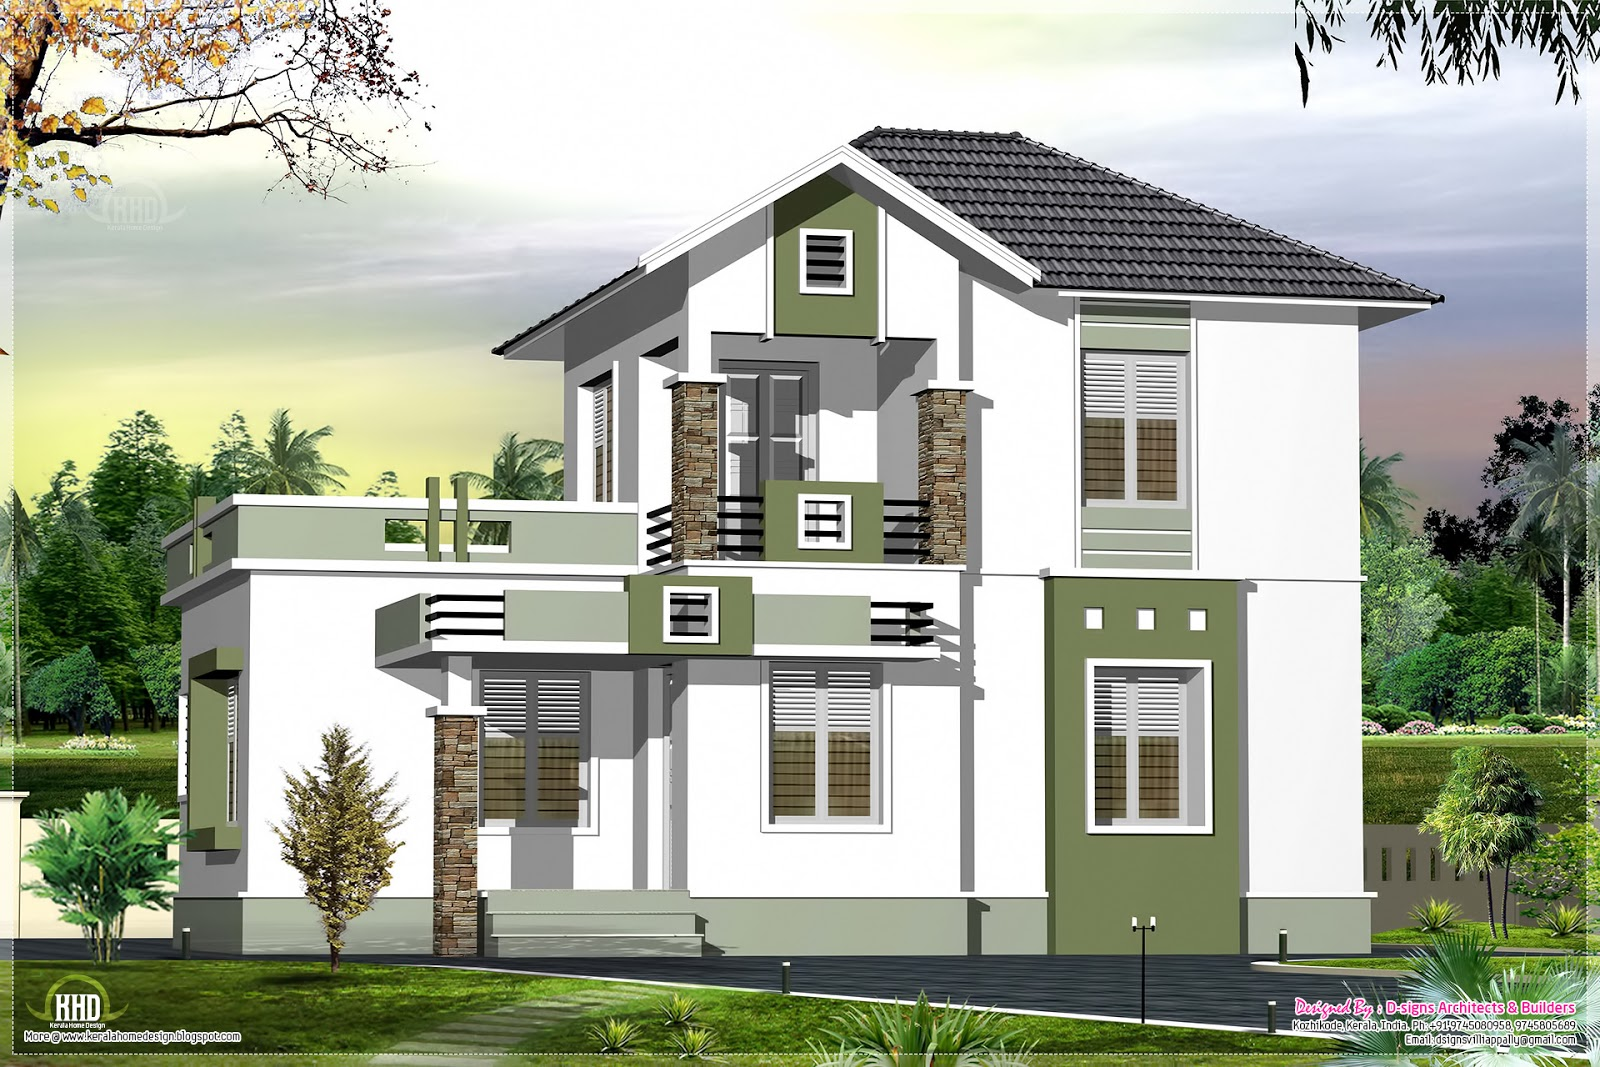 Small double floor home design in 1200 kerala home design and floor plans Small house design